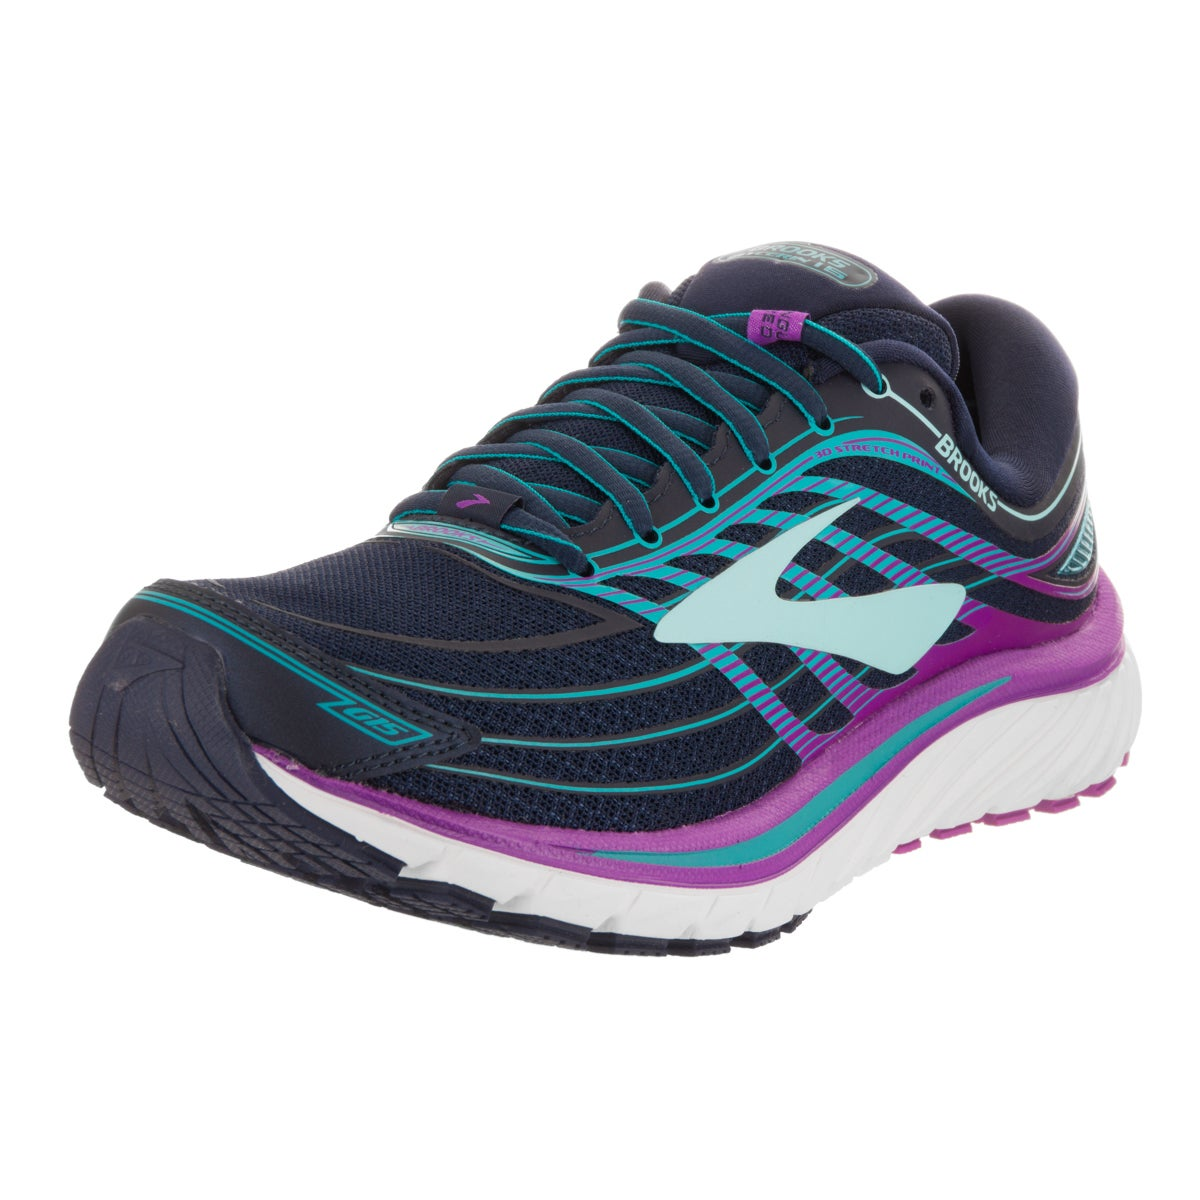 19ea545b4a072 Shop Brooks Women s Glycerin 15 Running Shoe - Free Shipping Today -  Overstock - 16431905